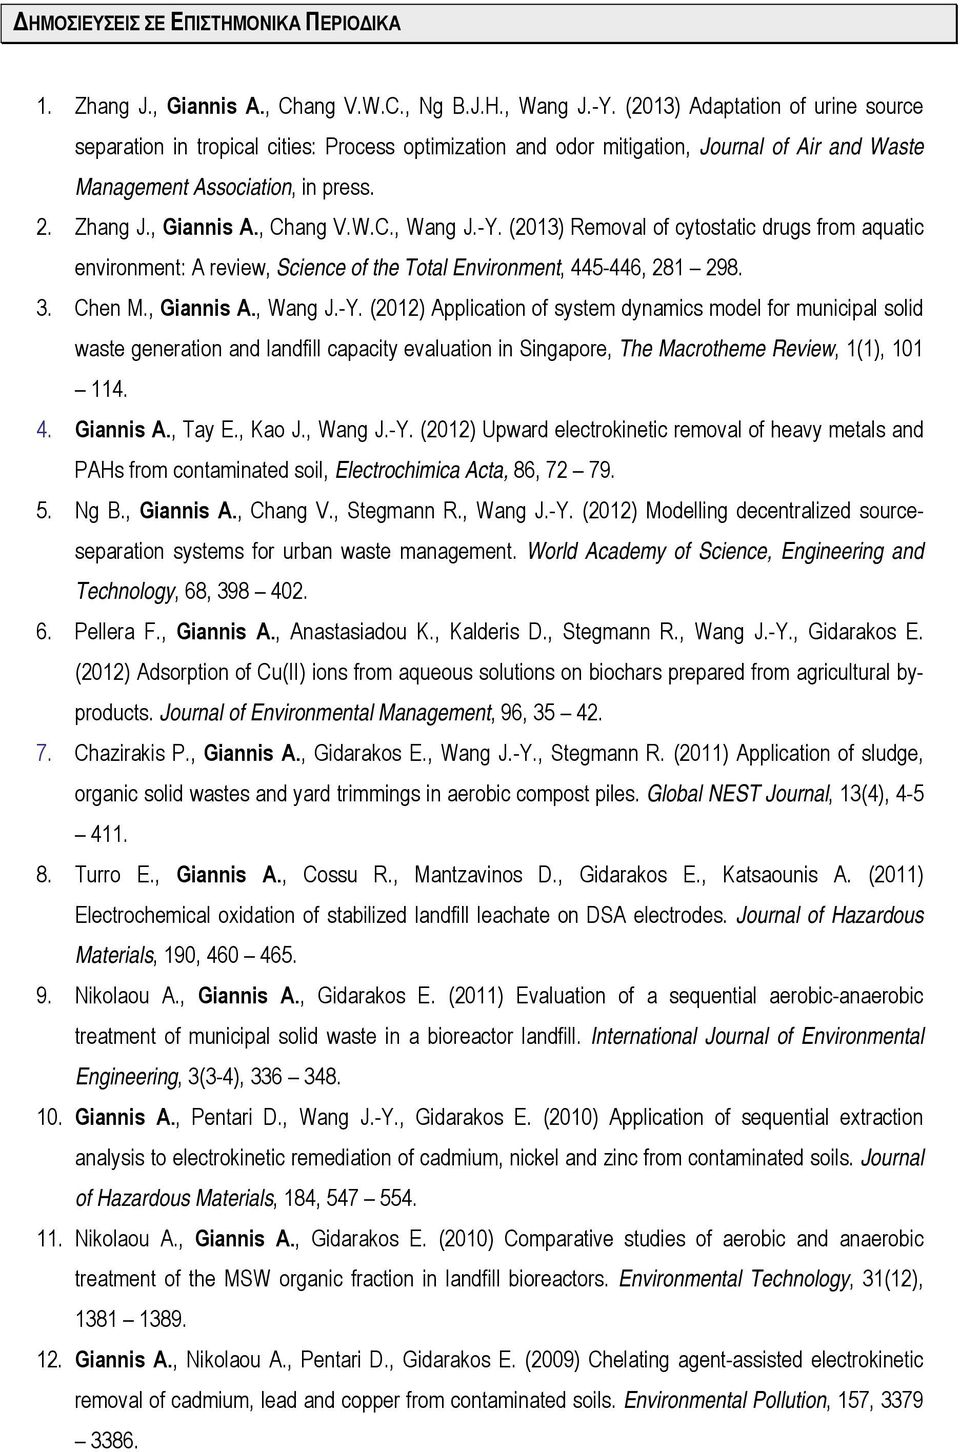 W.C., Wang J.-Y. (2013) Removal of cytostatic drugs from aquatic environment: A review, Science of the Total Environment, 445-446, 281 298. 3. Chen M., Giannis A., Wang J.-Y. (2012) Application of system dynamics model for municipal solid waste generation and landfill capacity evaluation in Singapore, The Macrotheme Review, 1(1), 101 114.